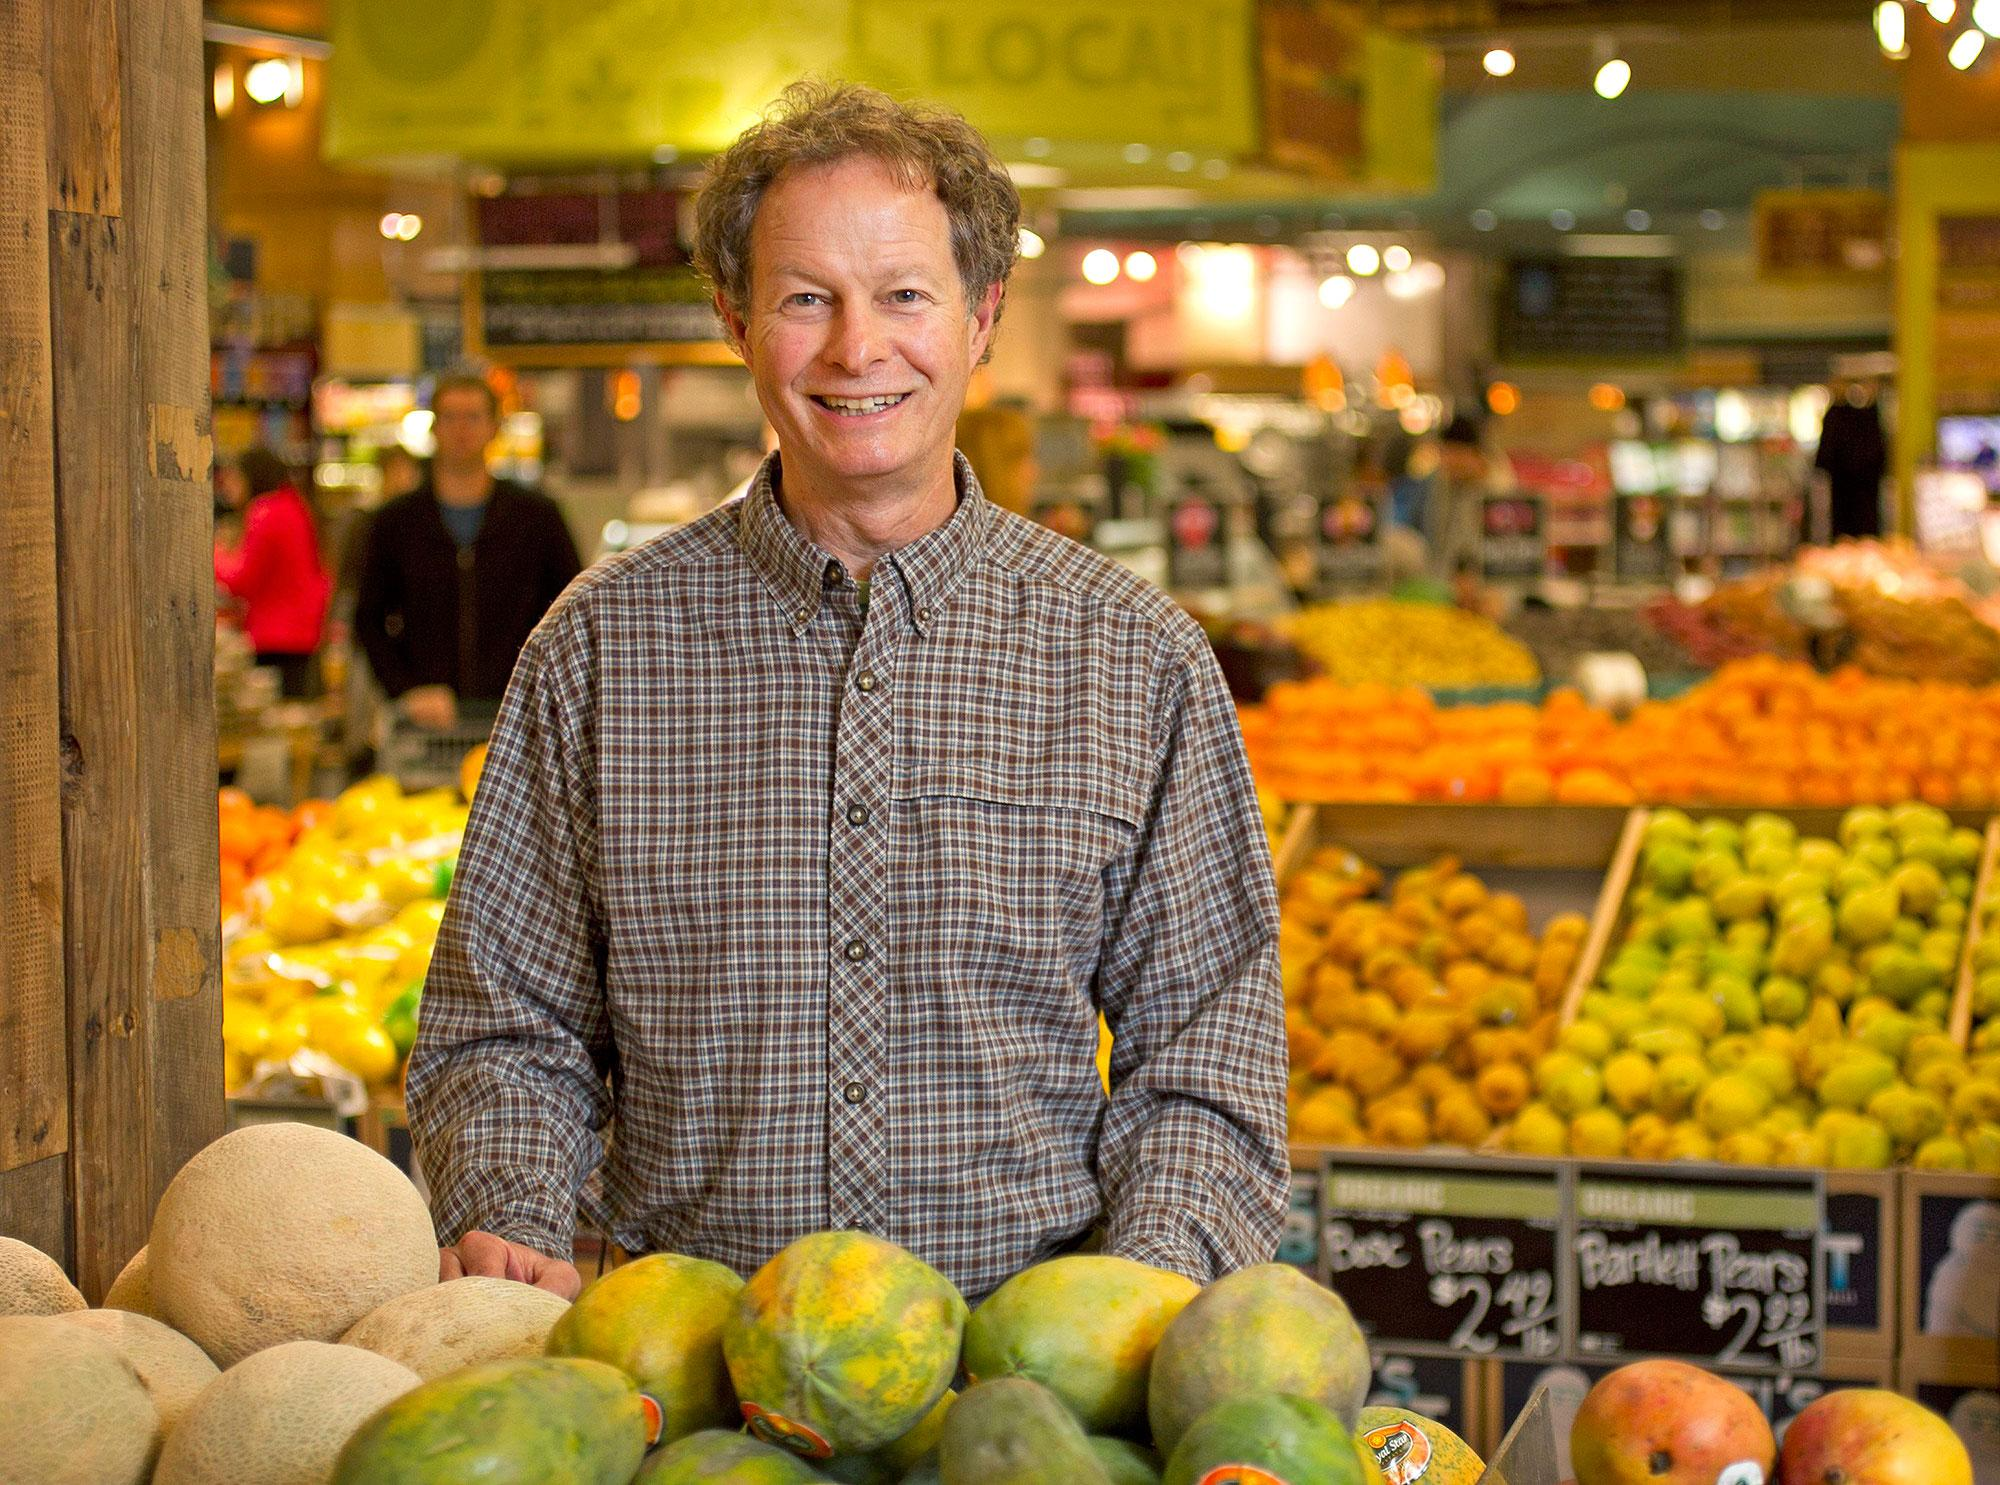 organizational behavior john mackey whole food market John mackey, founder and ceo of the whole foods empire, started his original health-food store, called safer way, in a garage in austin, texas, in mackey, meanwhile, has emerged as both a hero and antihero of the environmental movement on the one hand, he makes no apologies for running a.